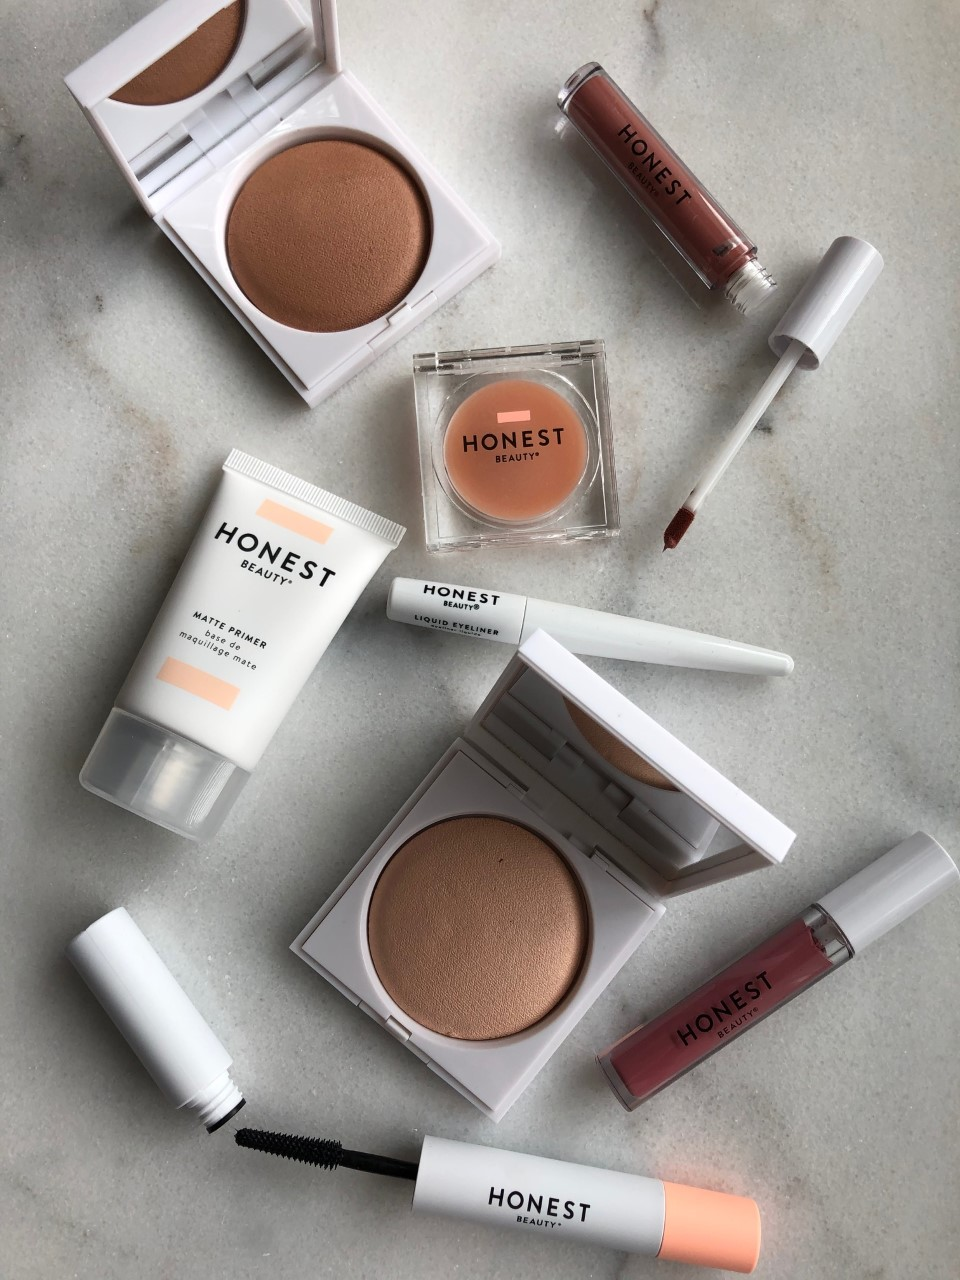 Honest Beauty makeup: A quick review